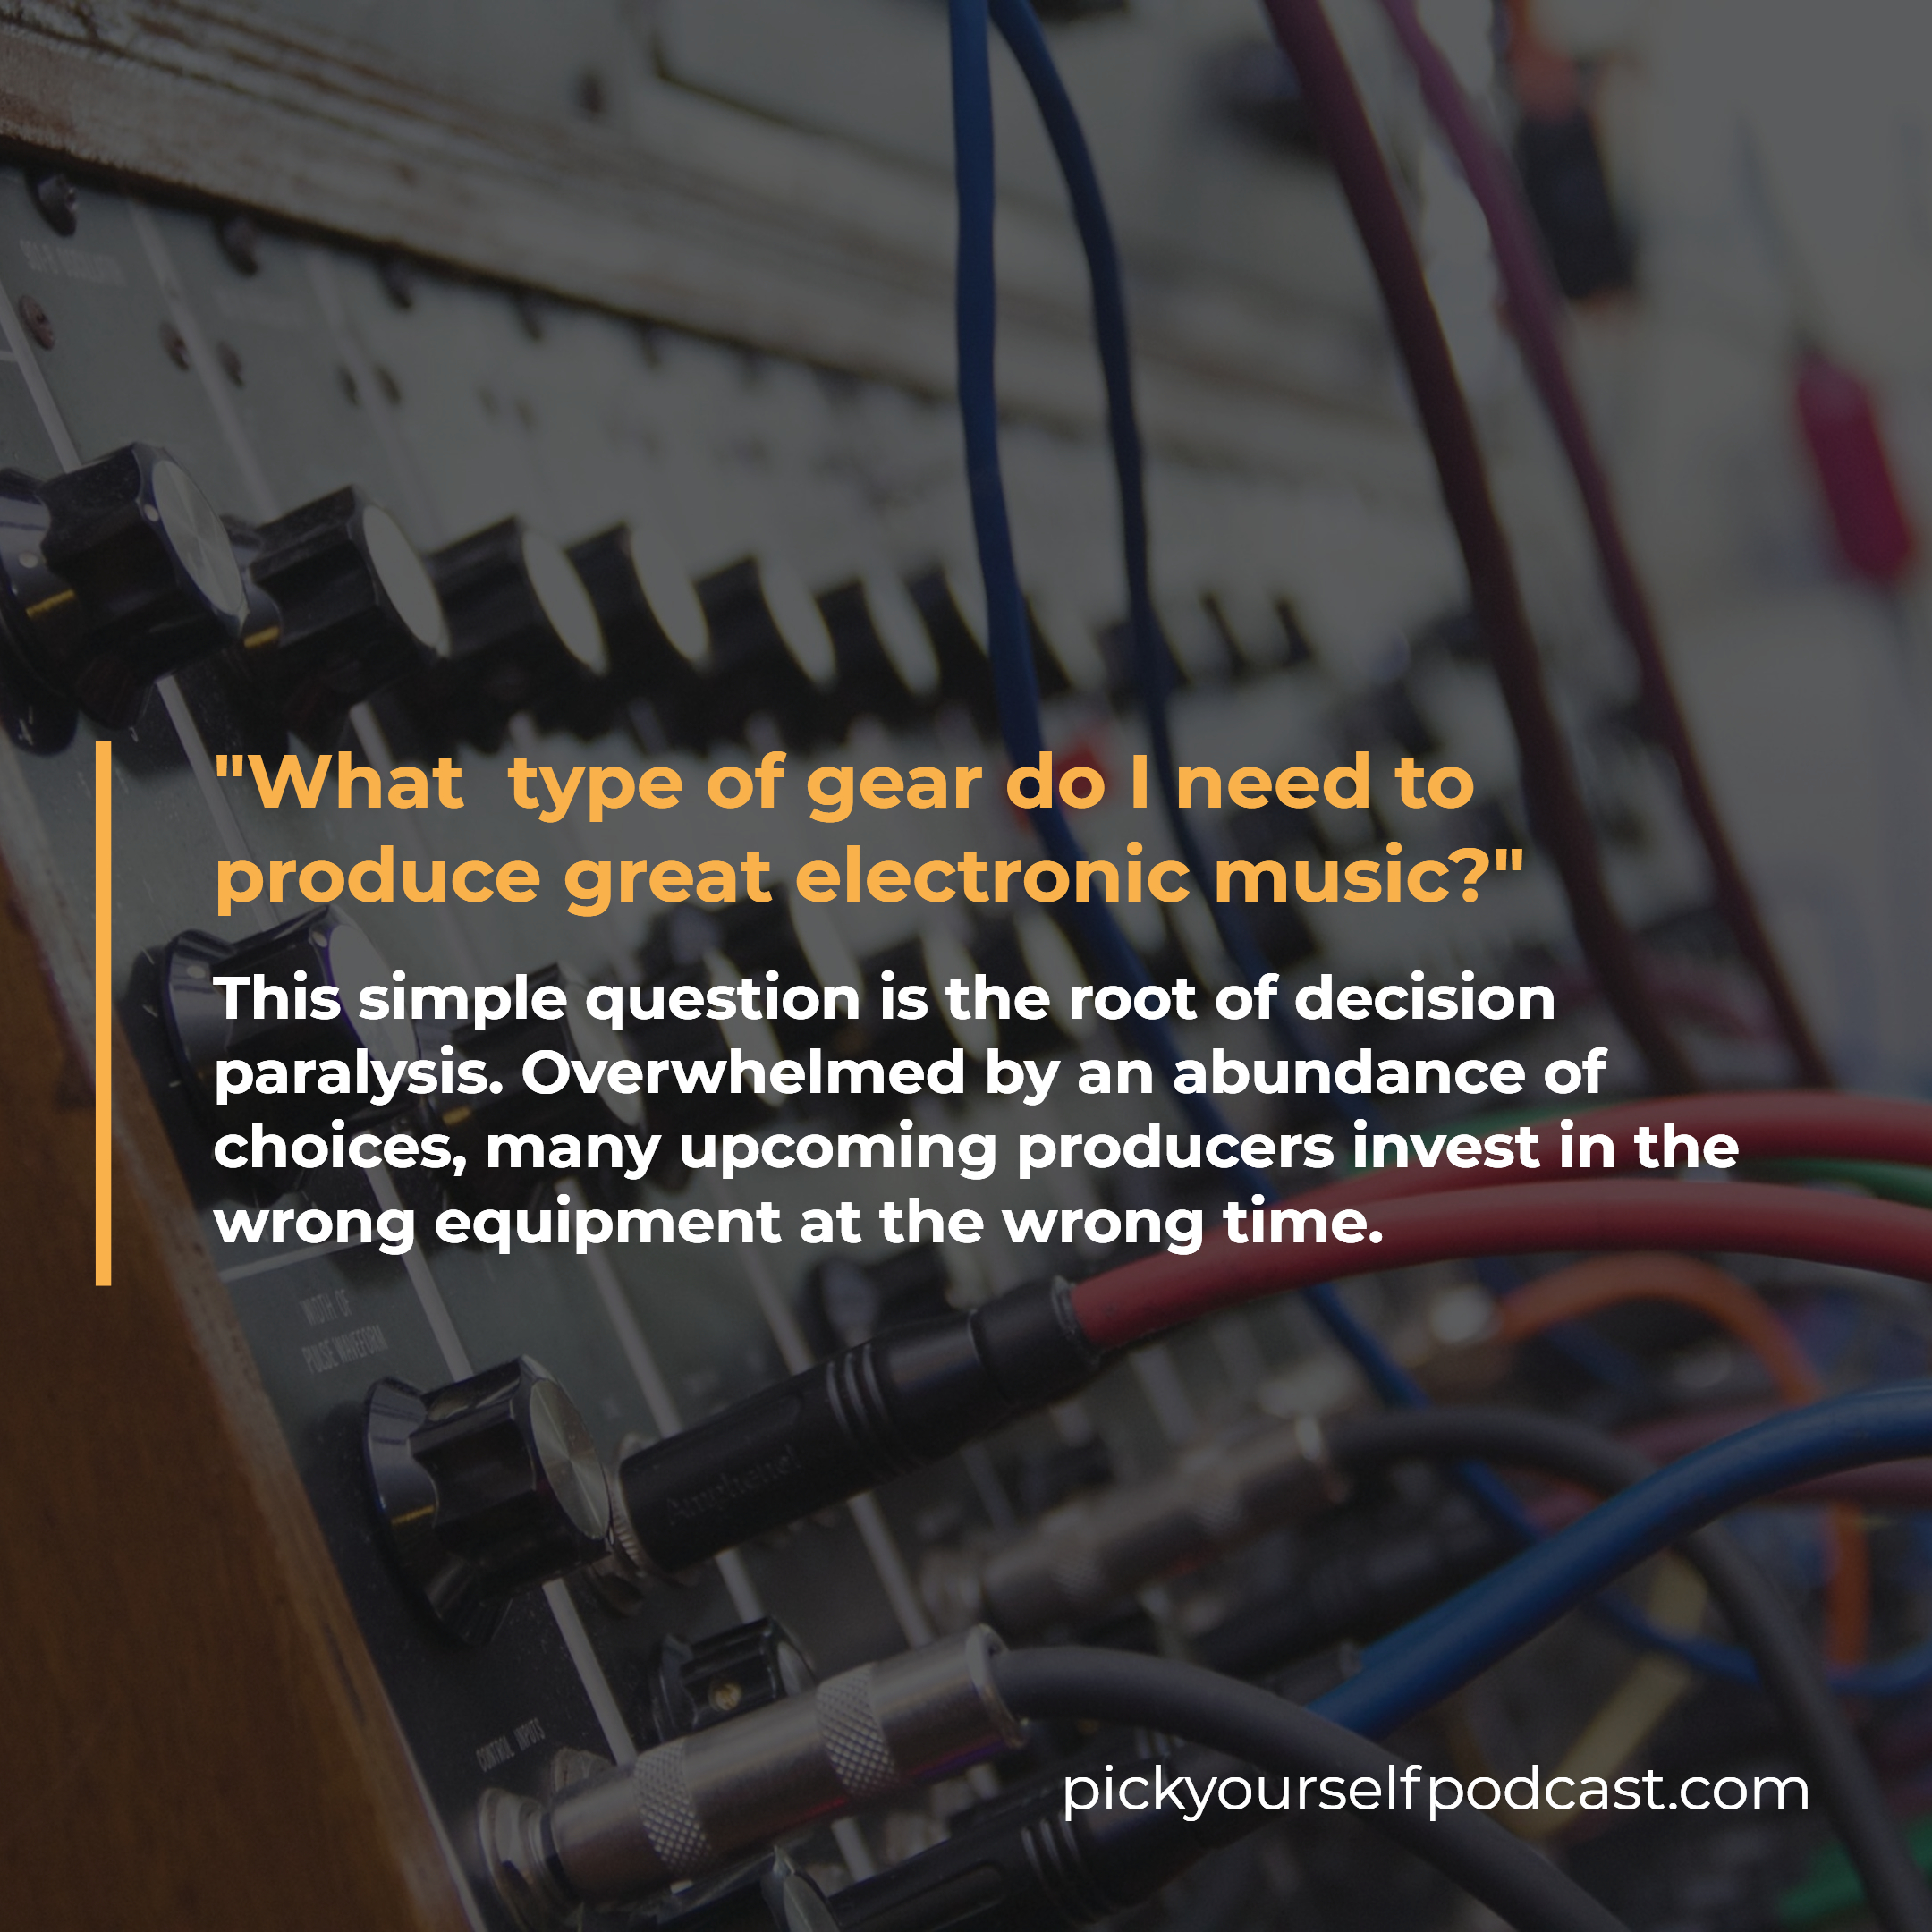 Gear for Electronic Music Production visual 01. It says: What type of gear do I need to produce great electronic music? This question creates decision paralysis.